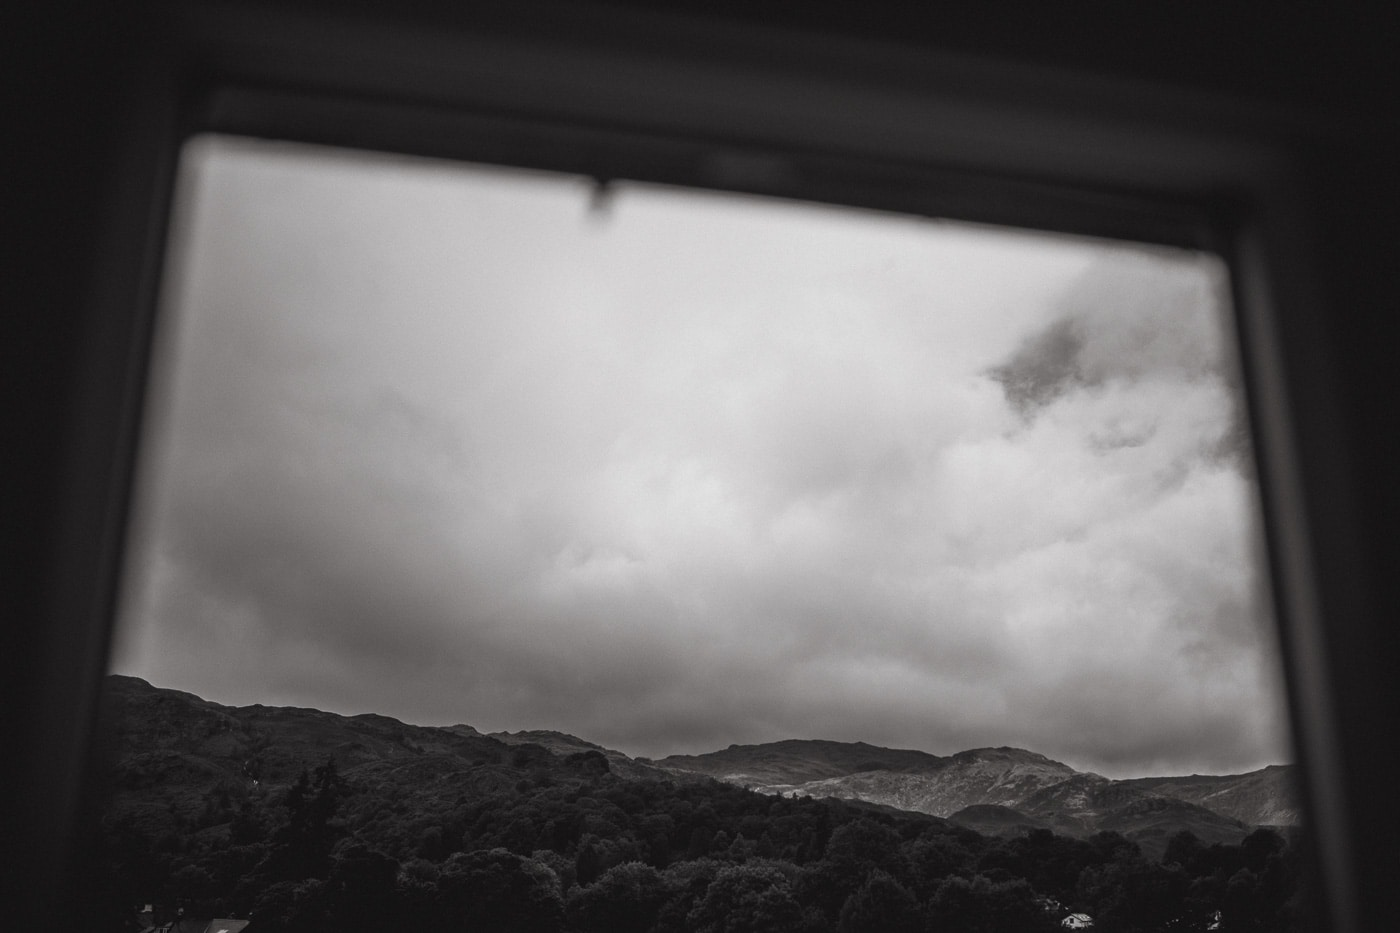 Clouds outside the window in Cumbria by Joshua Wyborn